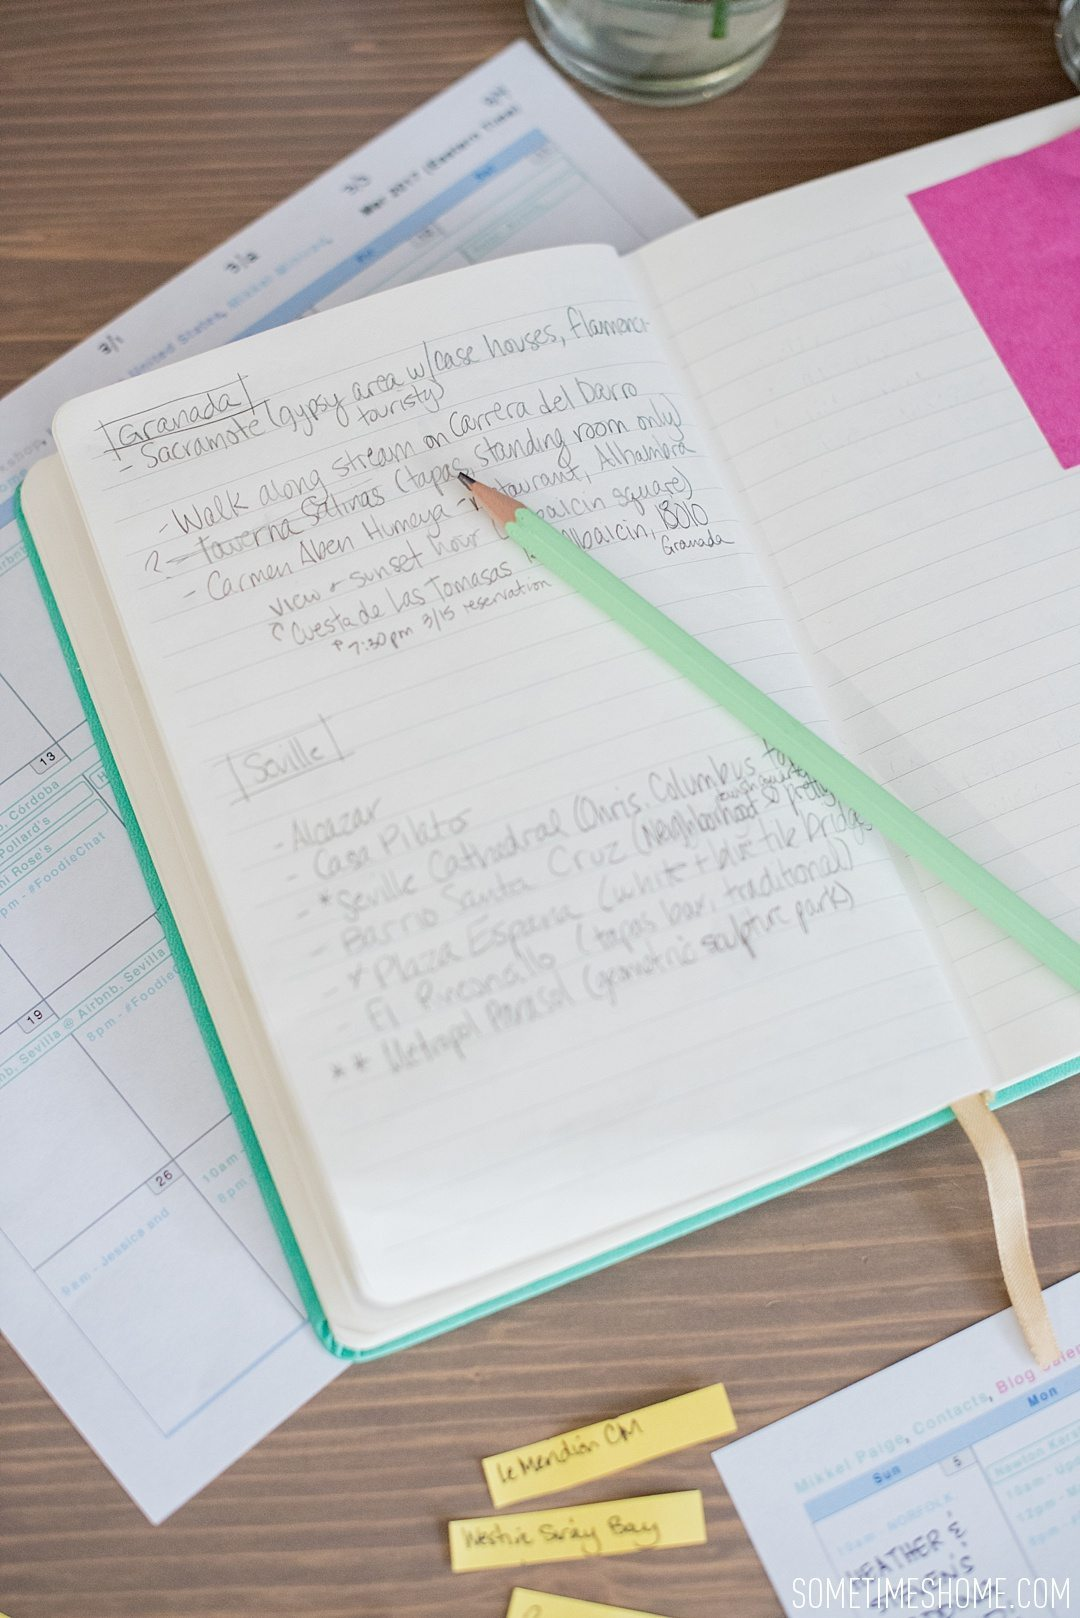 The Ugly Real Truth About My Travel Planning on Sometimes Home travel blog. A notebook can help you stay organized.